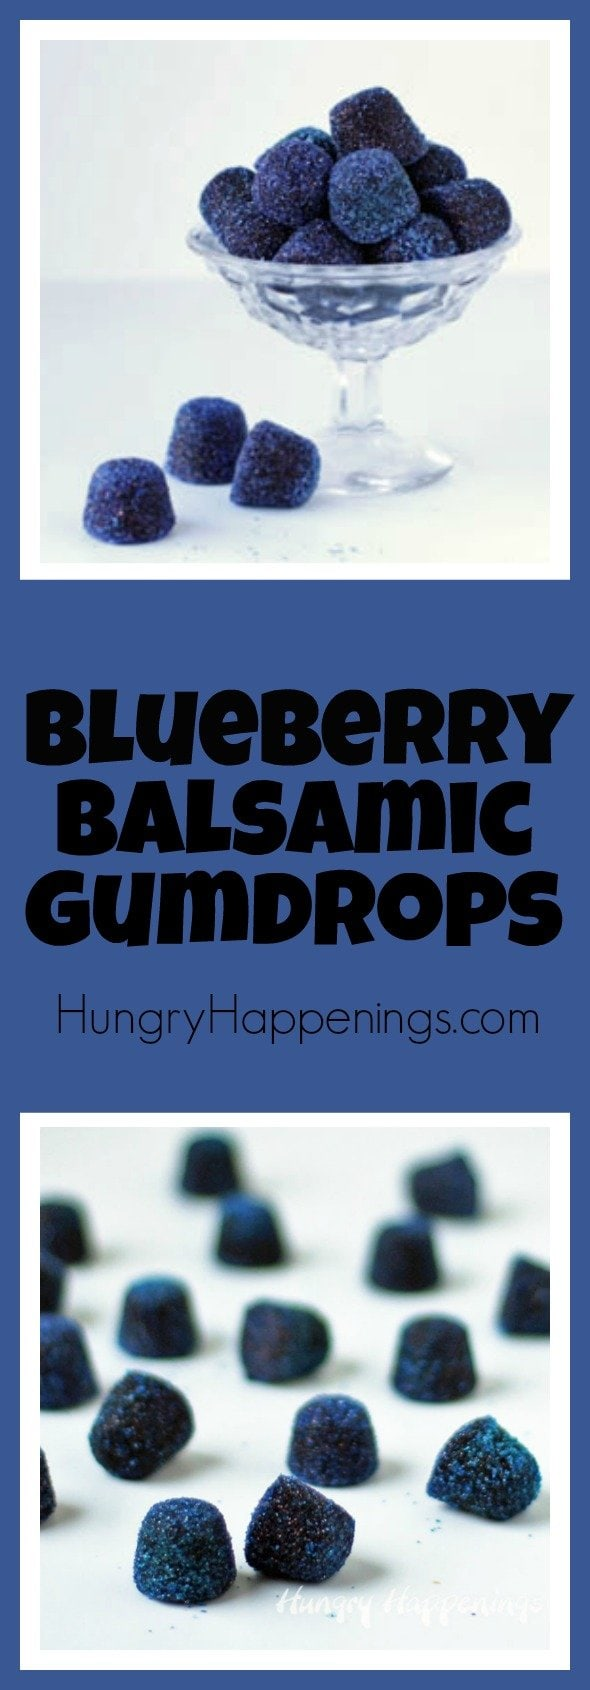 Use ordinary blueberries that you can find in any grocery store and turn them into some scrumptious gumdrops. This Tart Balsamic Blueberry Gumdrops Recipe is the perfect way to add some freshness to a holiday favorite.